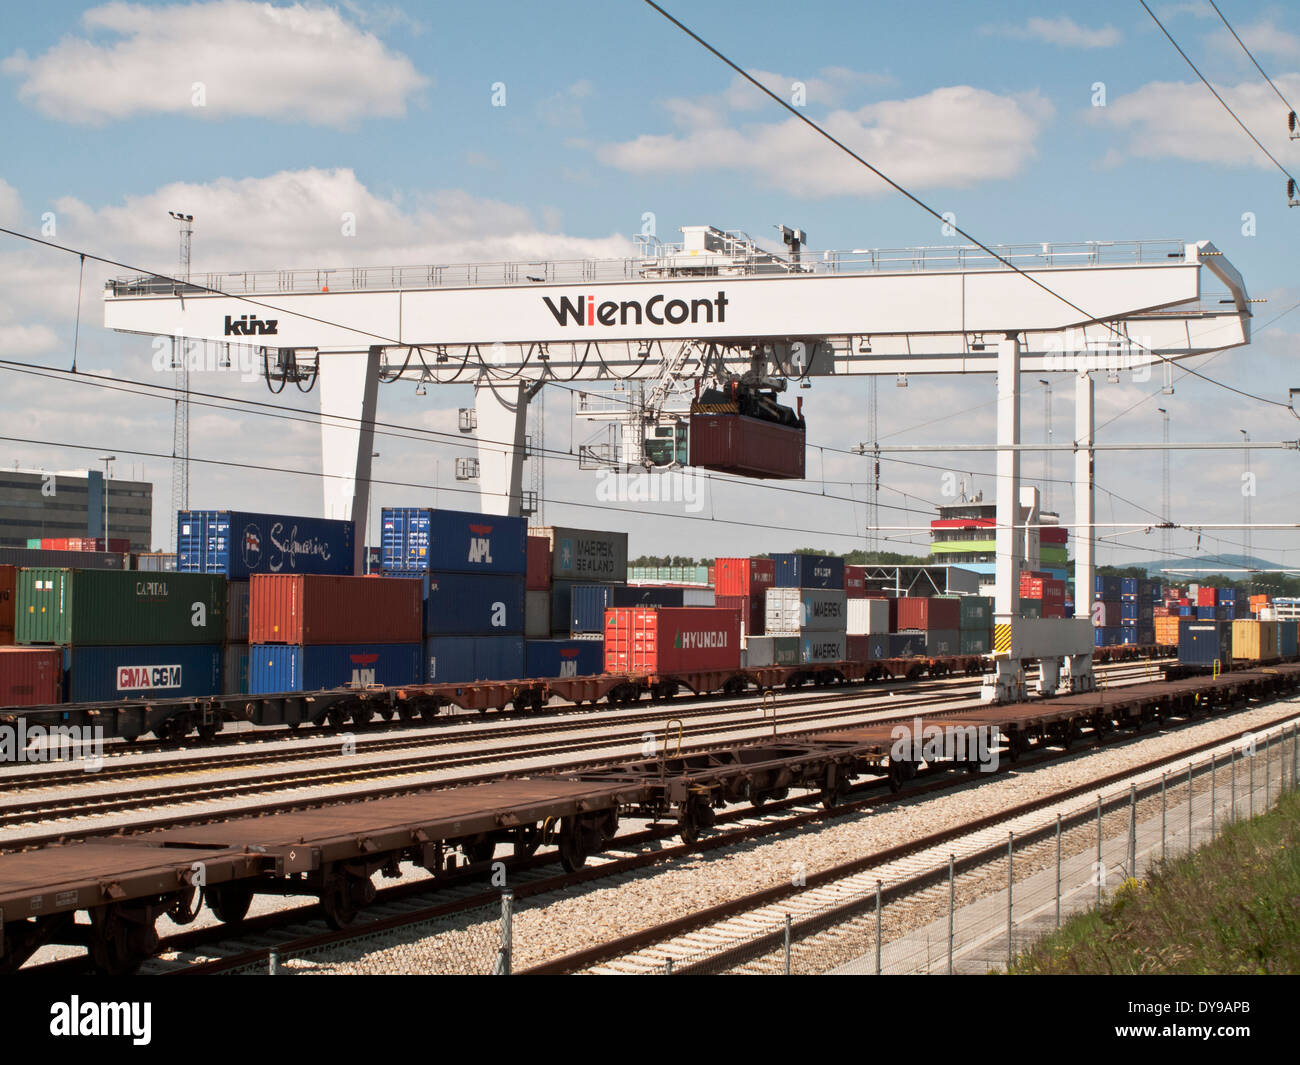 The Container Railway Terminal in Vienna, Austria. - Stock Image